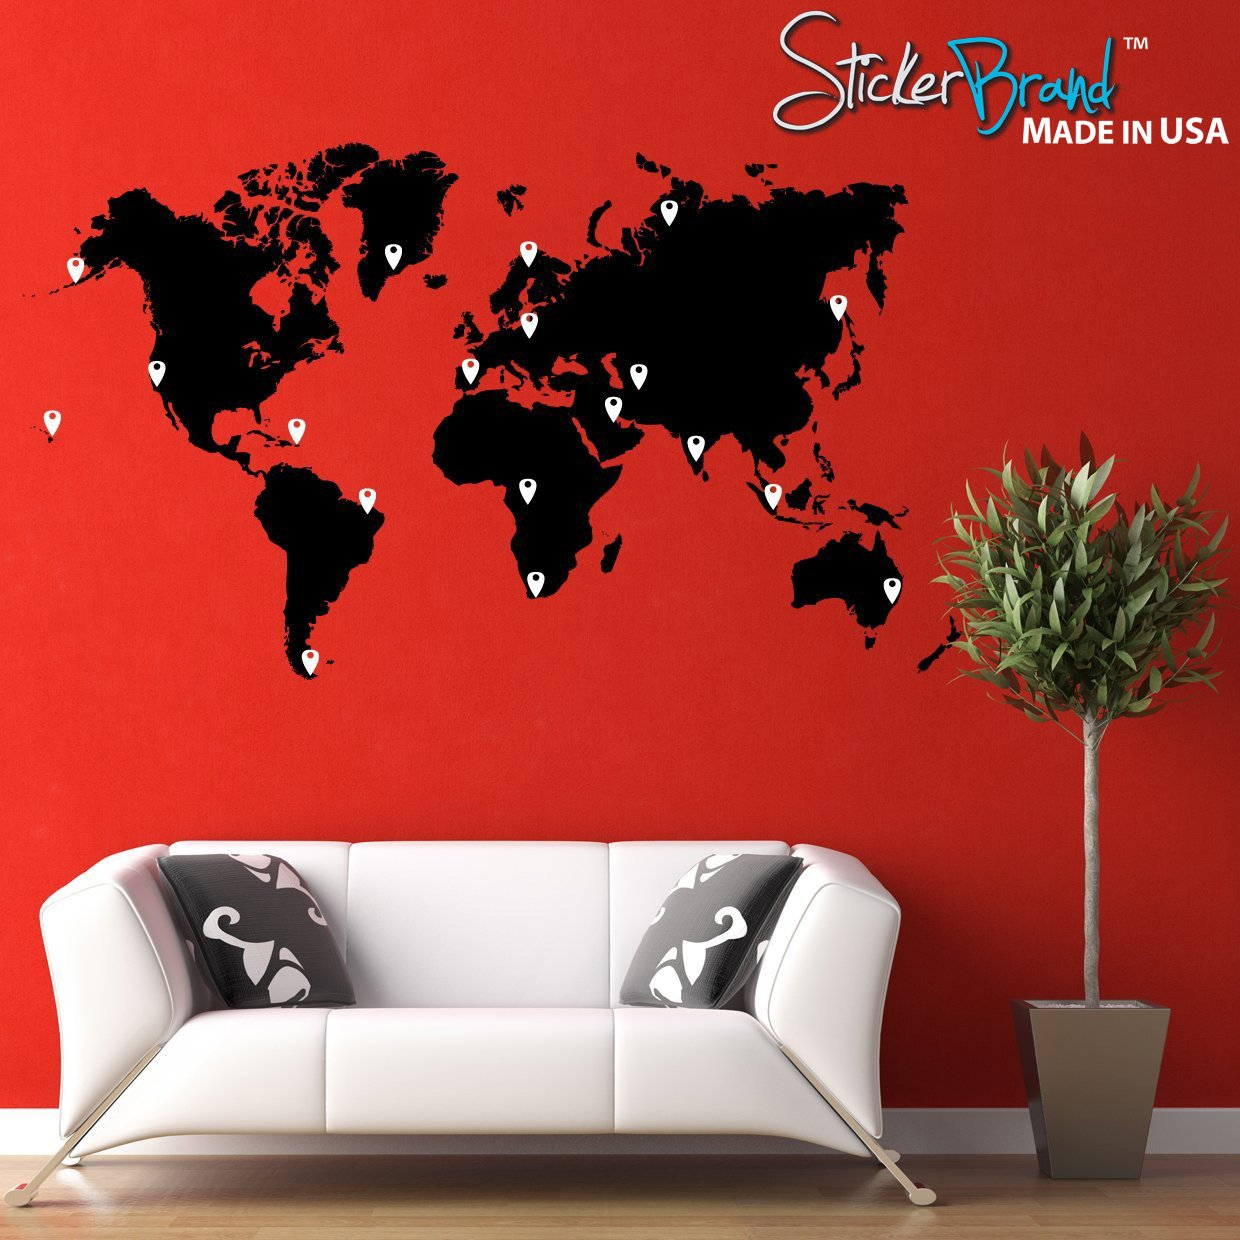 Amazoncom Stickerbrand Vinyl Wall Art World Map Of Earth With - How do you put up vinyl wall decals